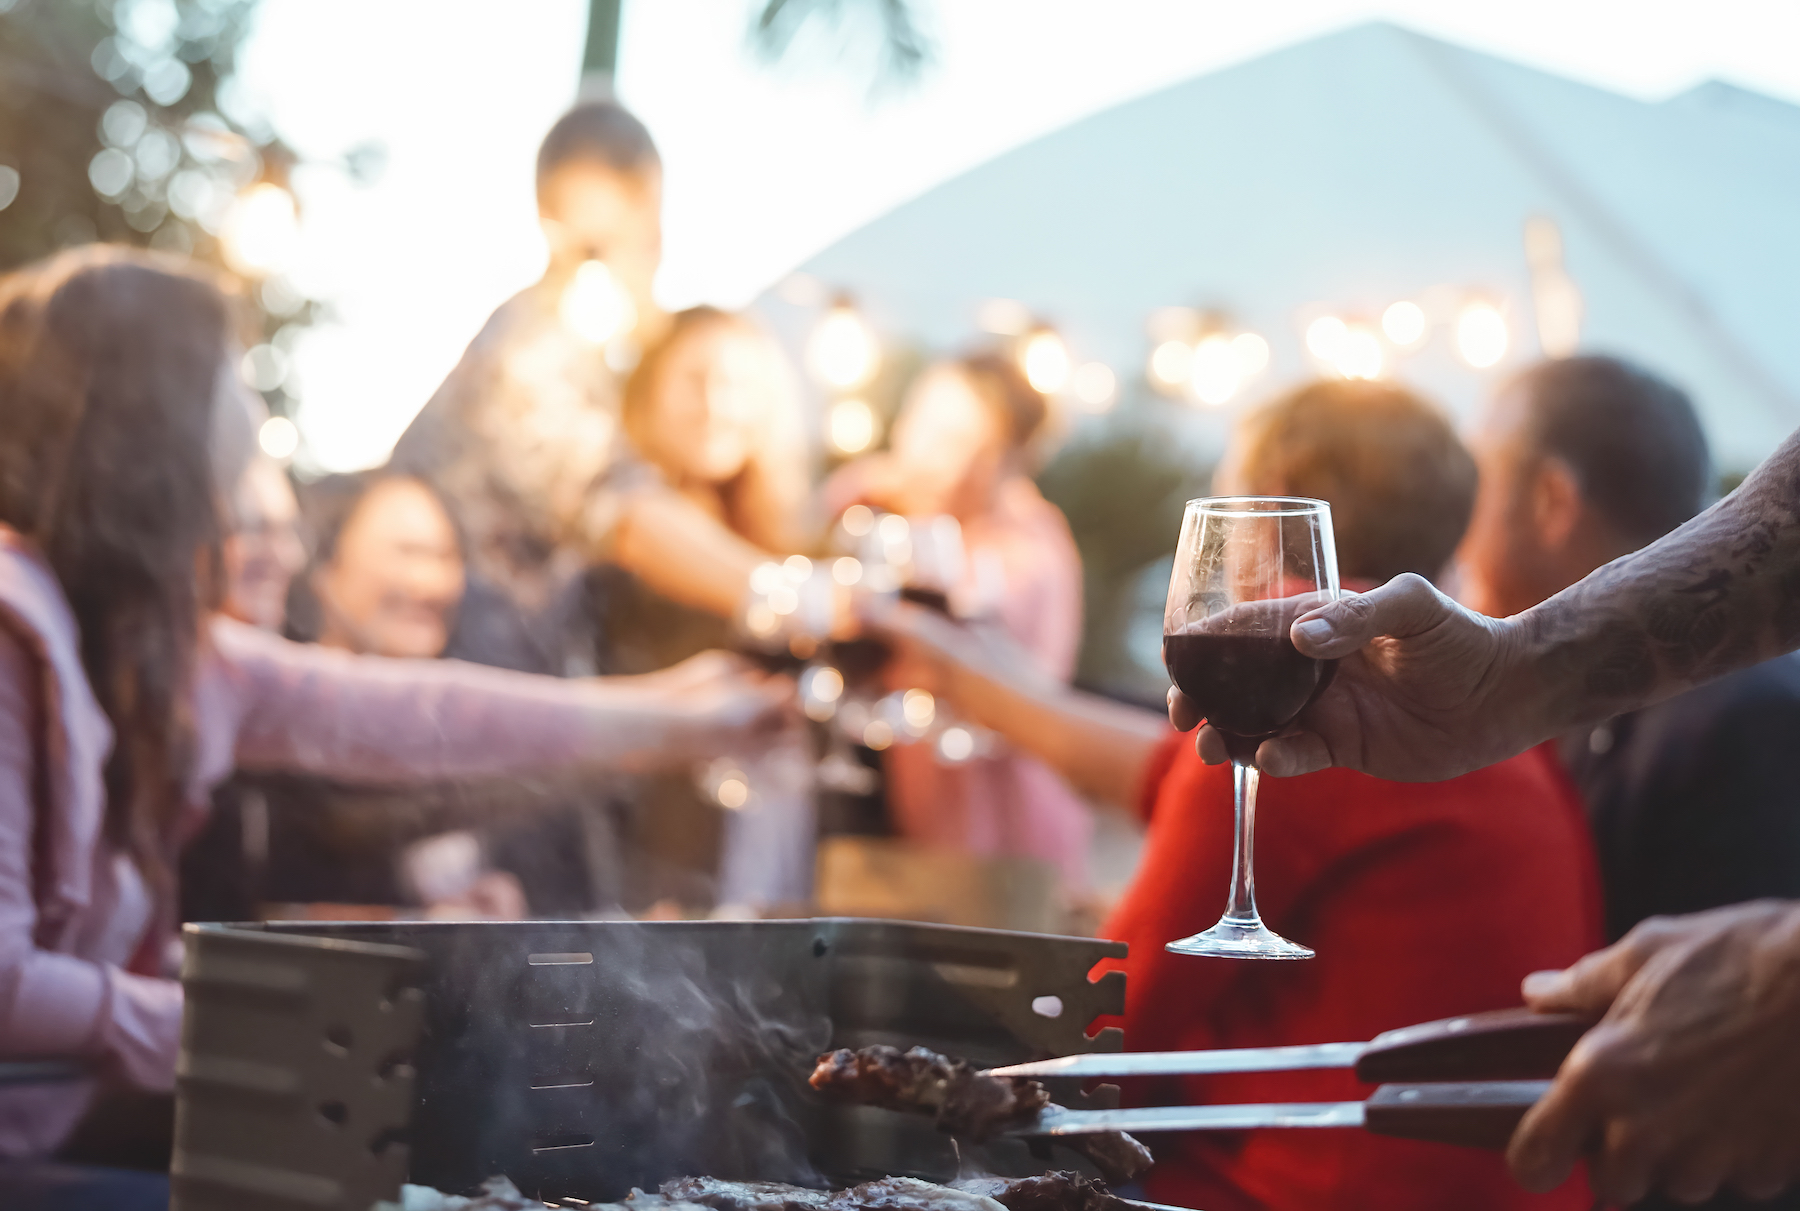 Happy-family-doing-celebratory-toast-at-barbecue-party---Young-and-older--parents-having-fun-dining-together-in-garden---Dinner-bbq-food-and-youth-elderly-generation-activities-concept-1189533428 3469x2334